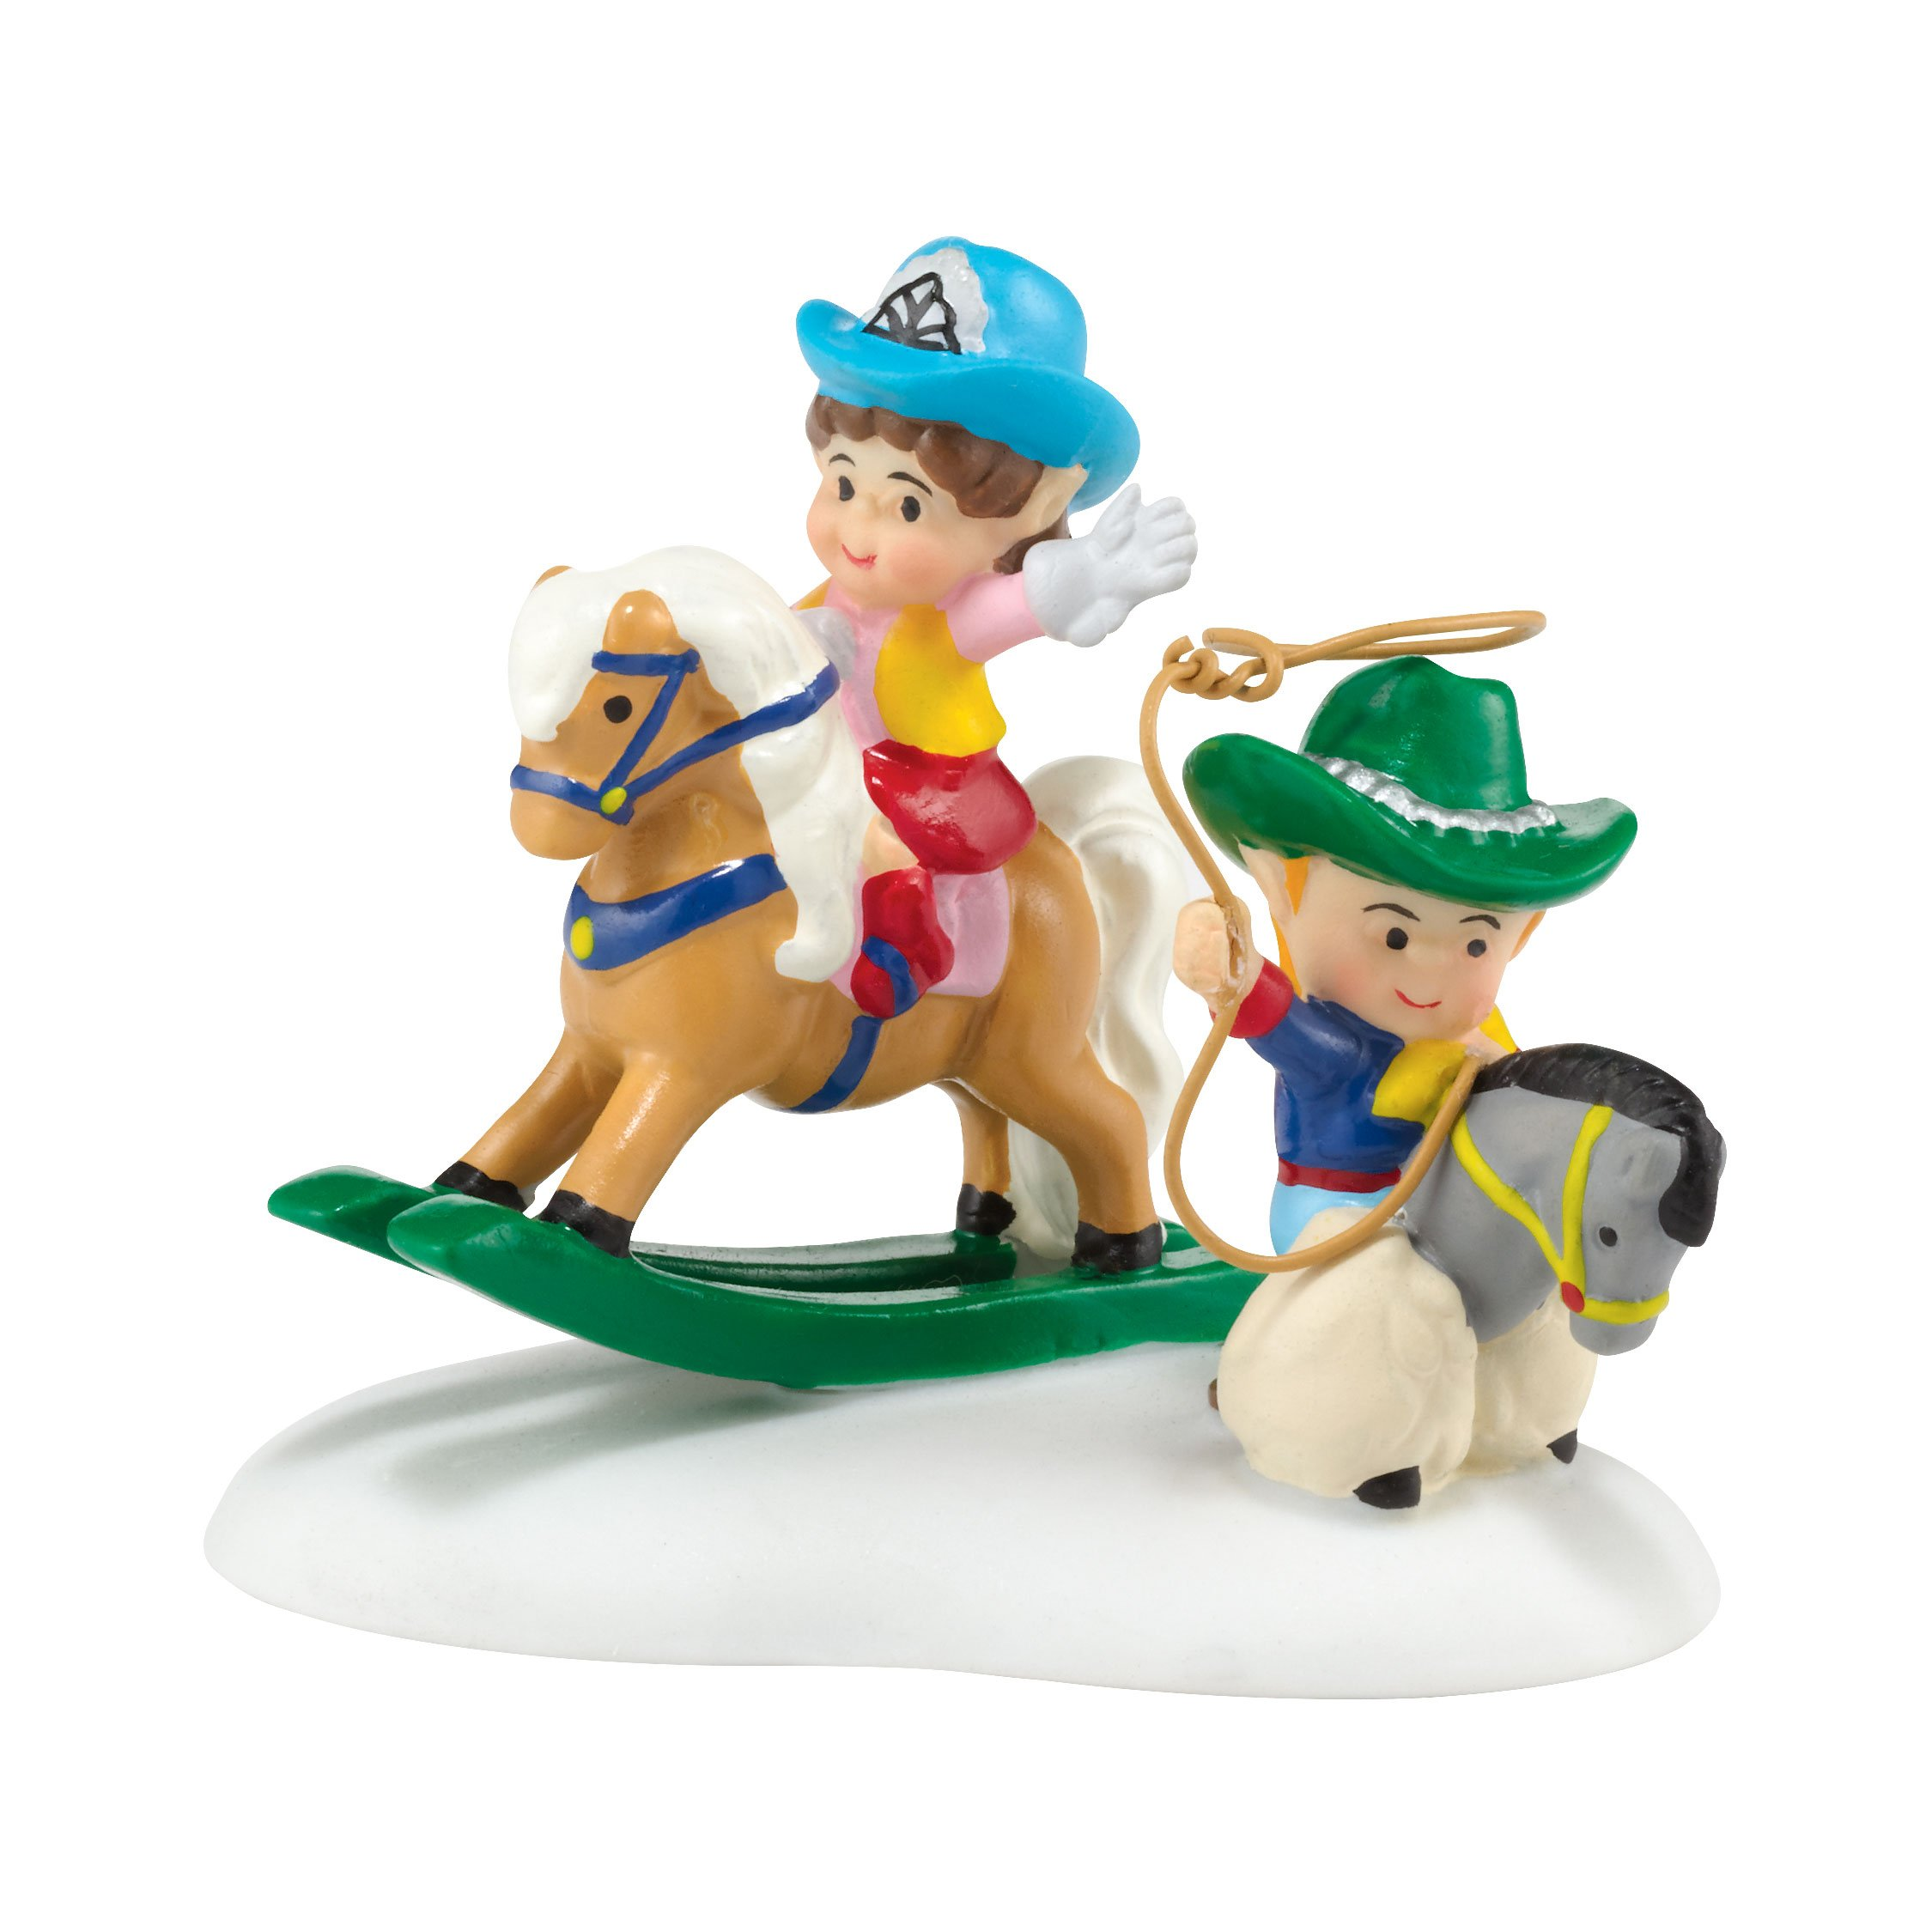 Department 56 North Pole Village Cowboy Kids Accessory, 1.57 inch